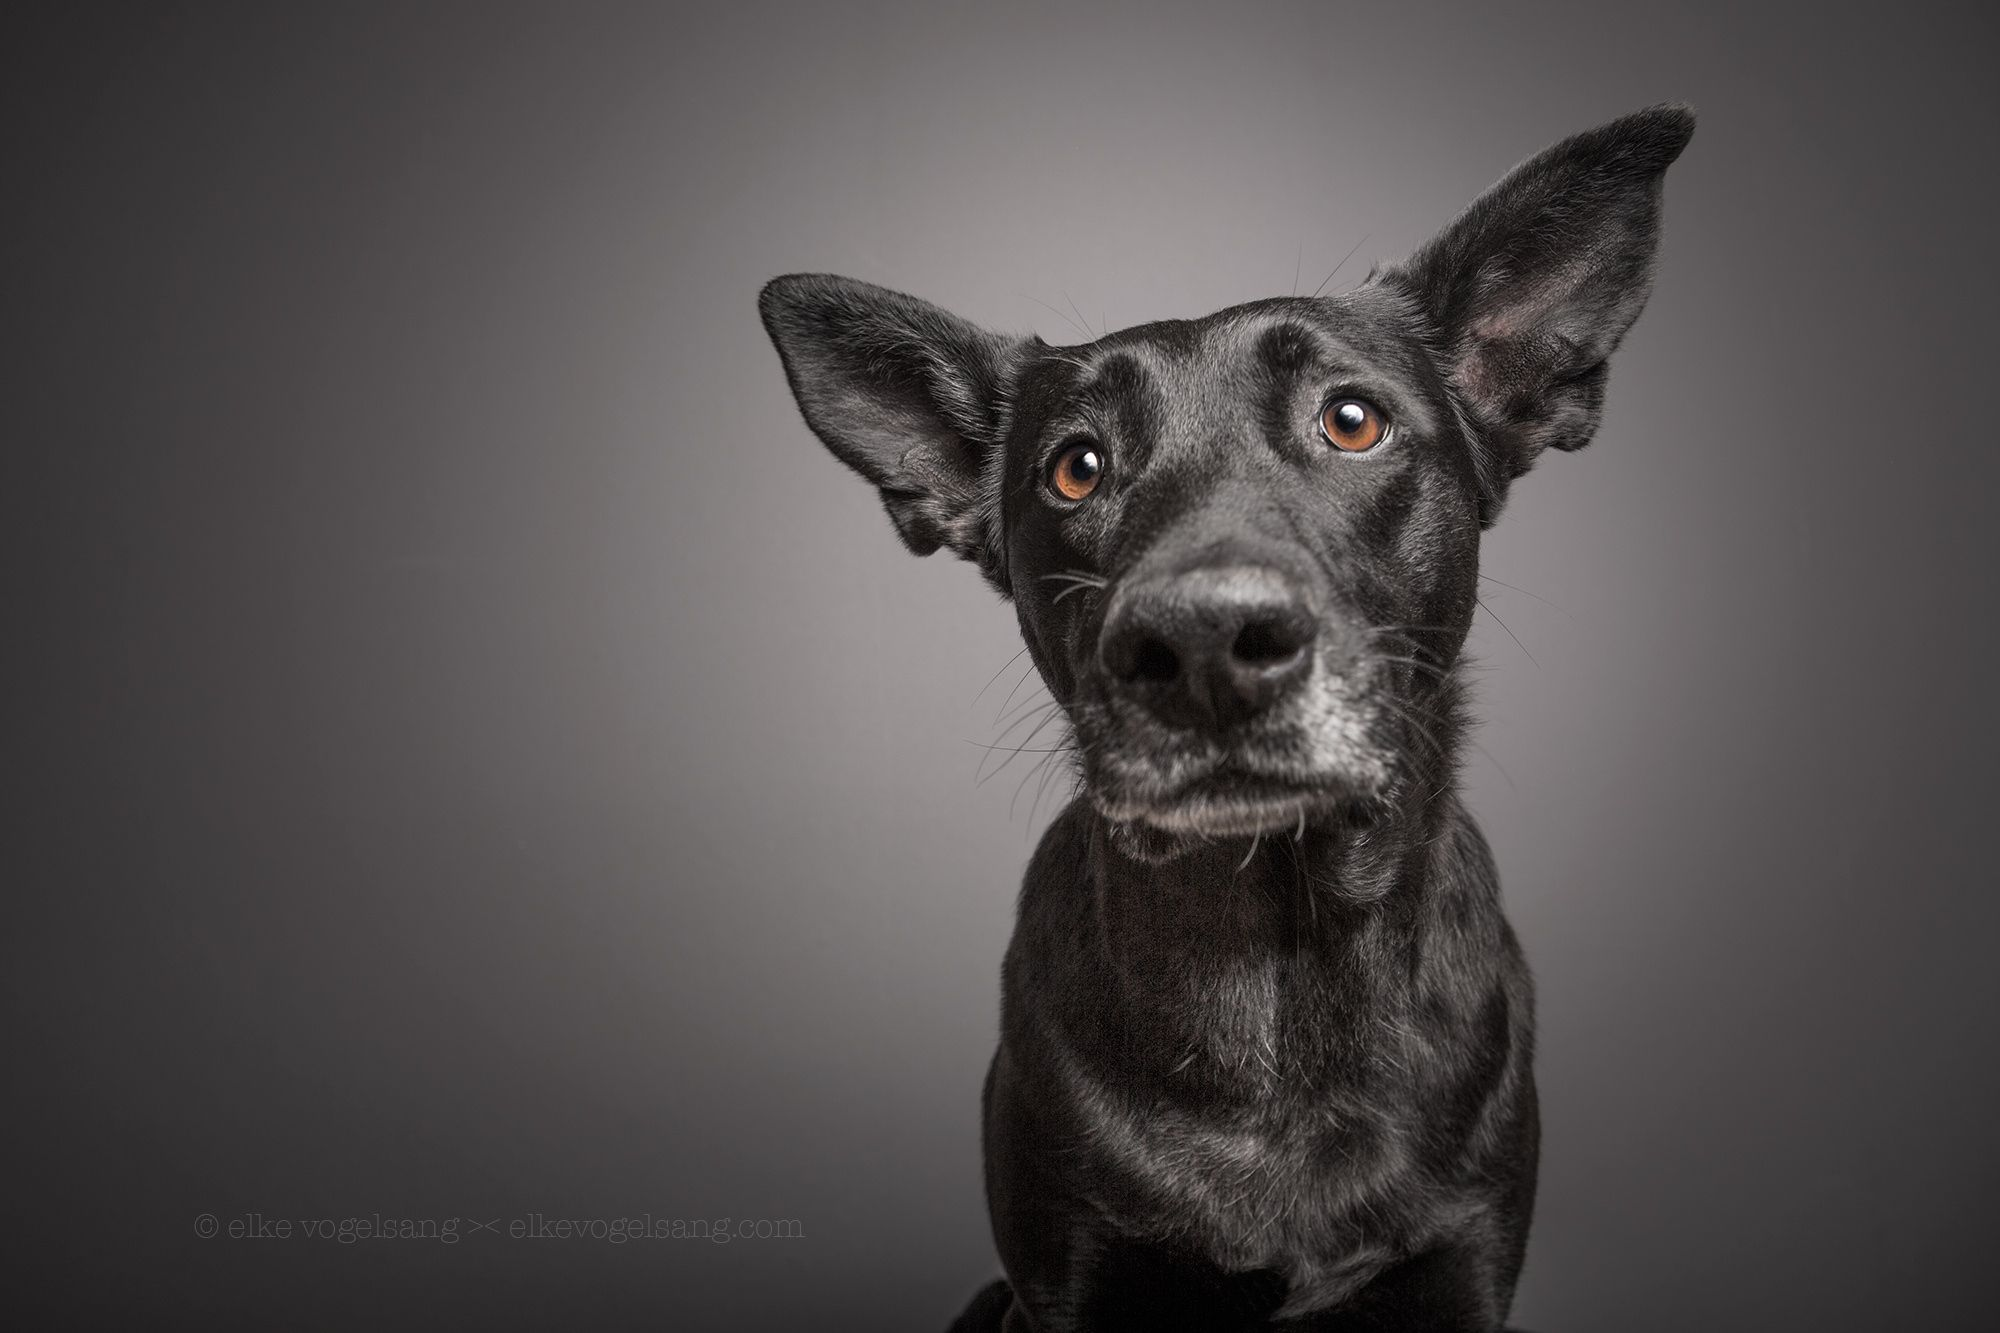 And they say that animals got no soul by Elke Vogelsang on